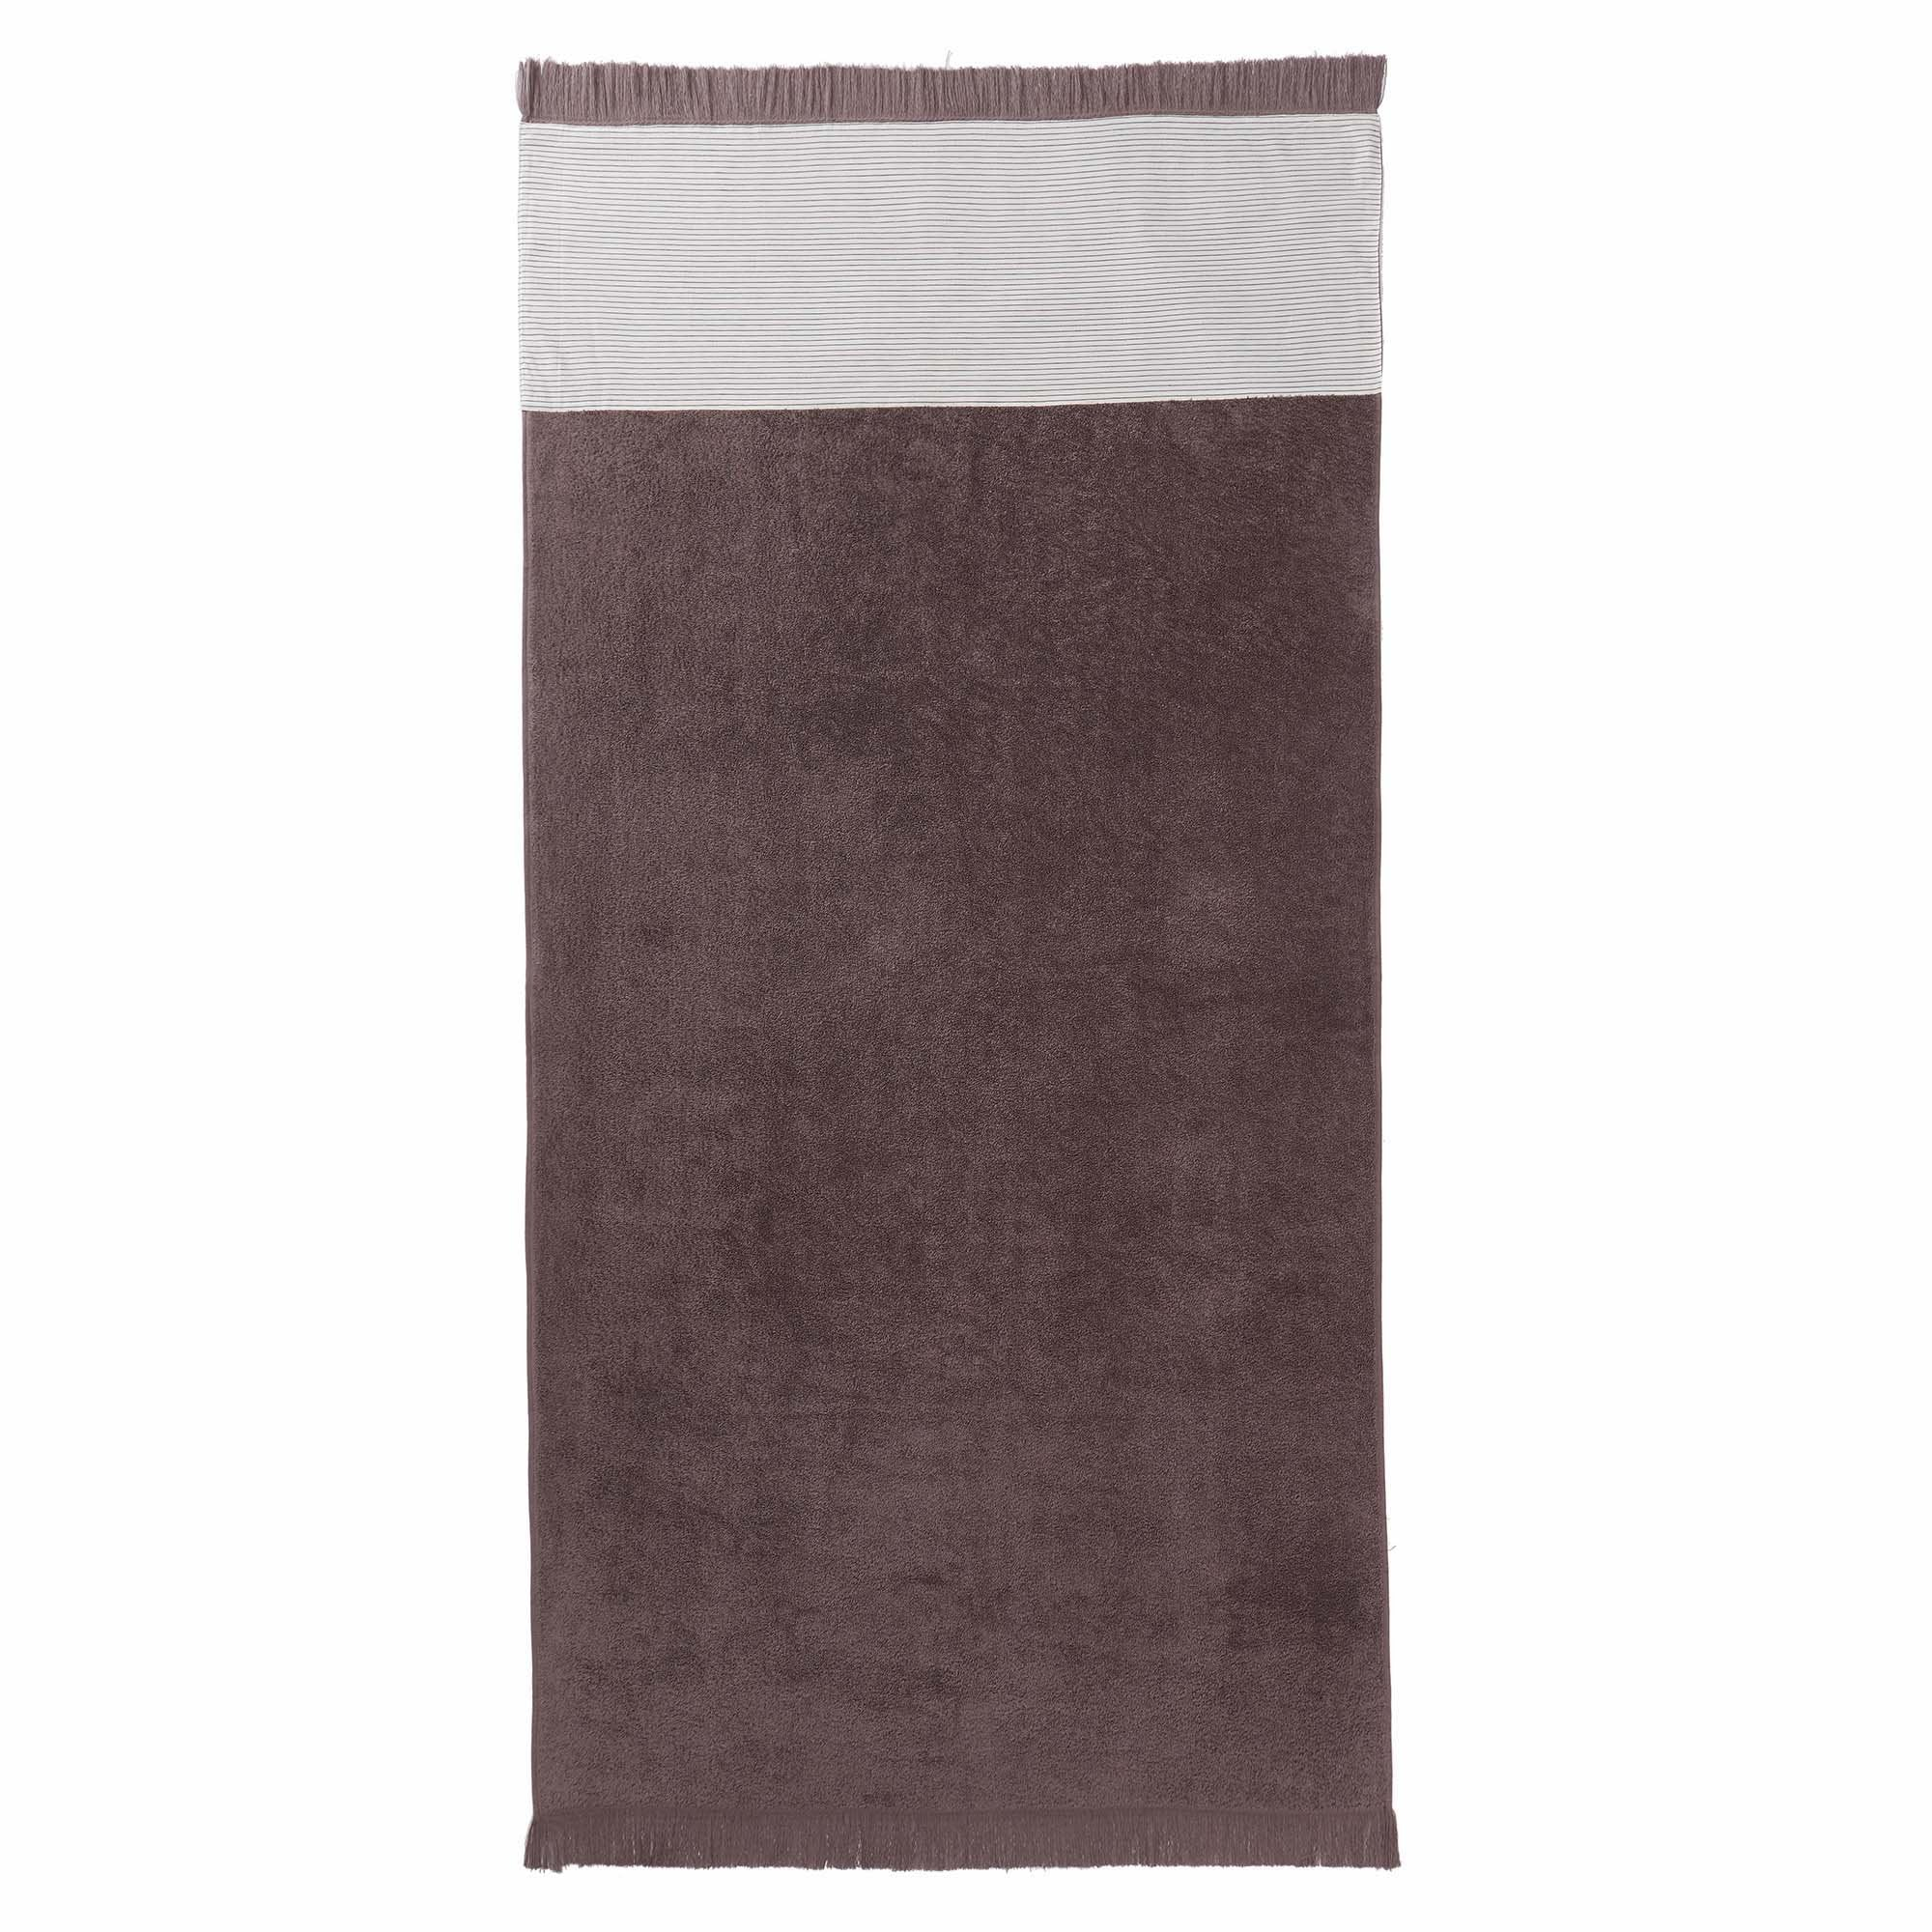 Luni beach towel, grey, 100% cotton